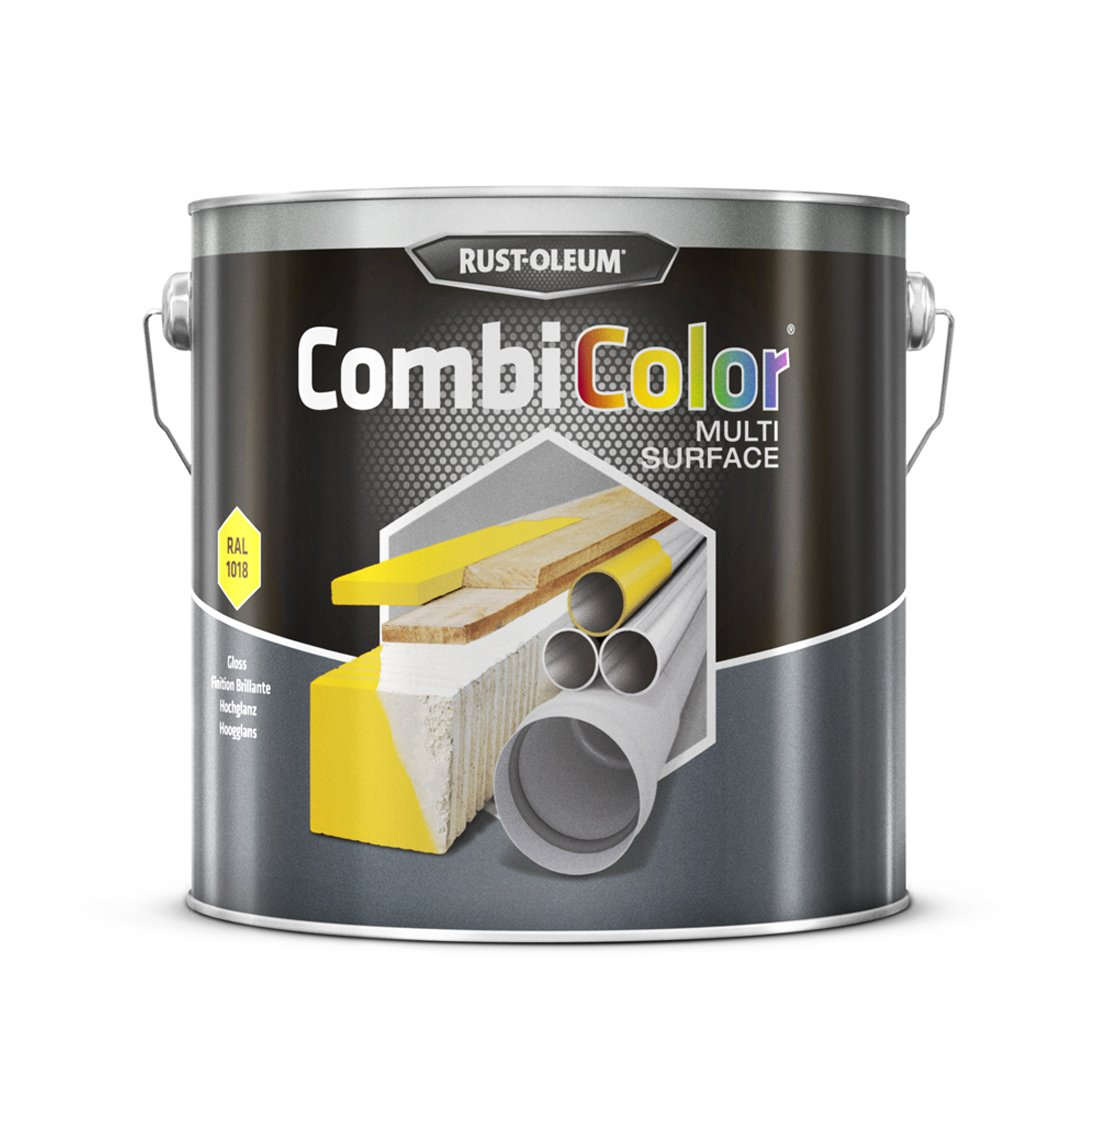 RUST-OLEUM 7343MS.2.5 Combicolor Multi-Surface, One Paint, Many Surfaces, Light yellow-RAL 1018